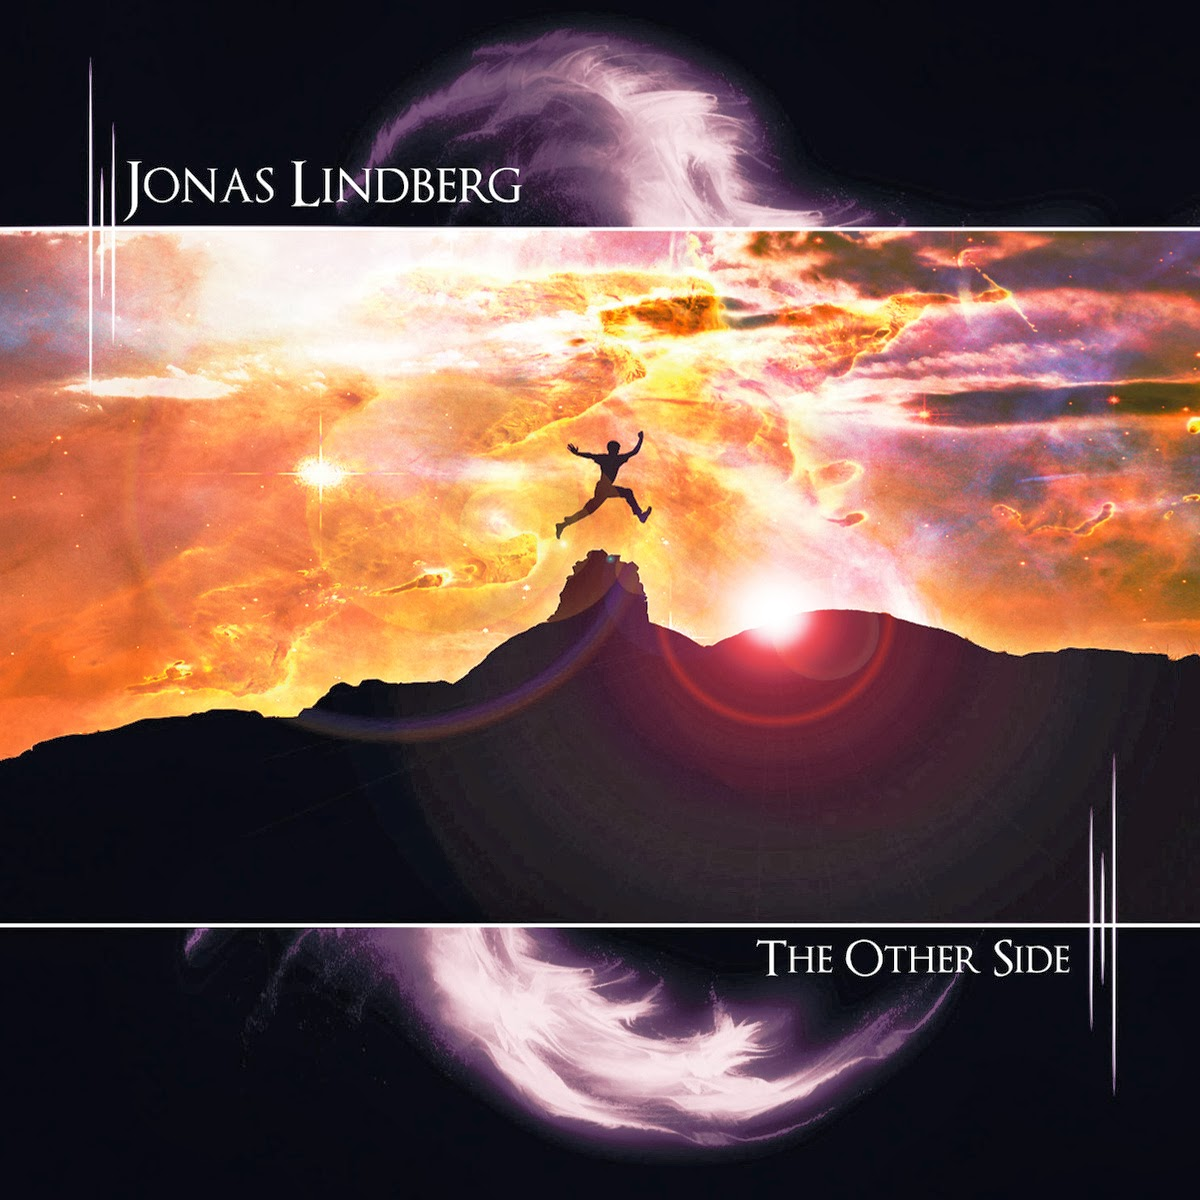 Jonas Lindberg - The other side